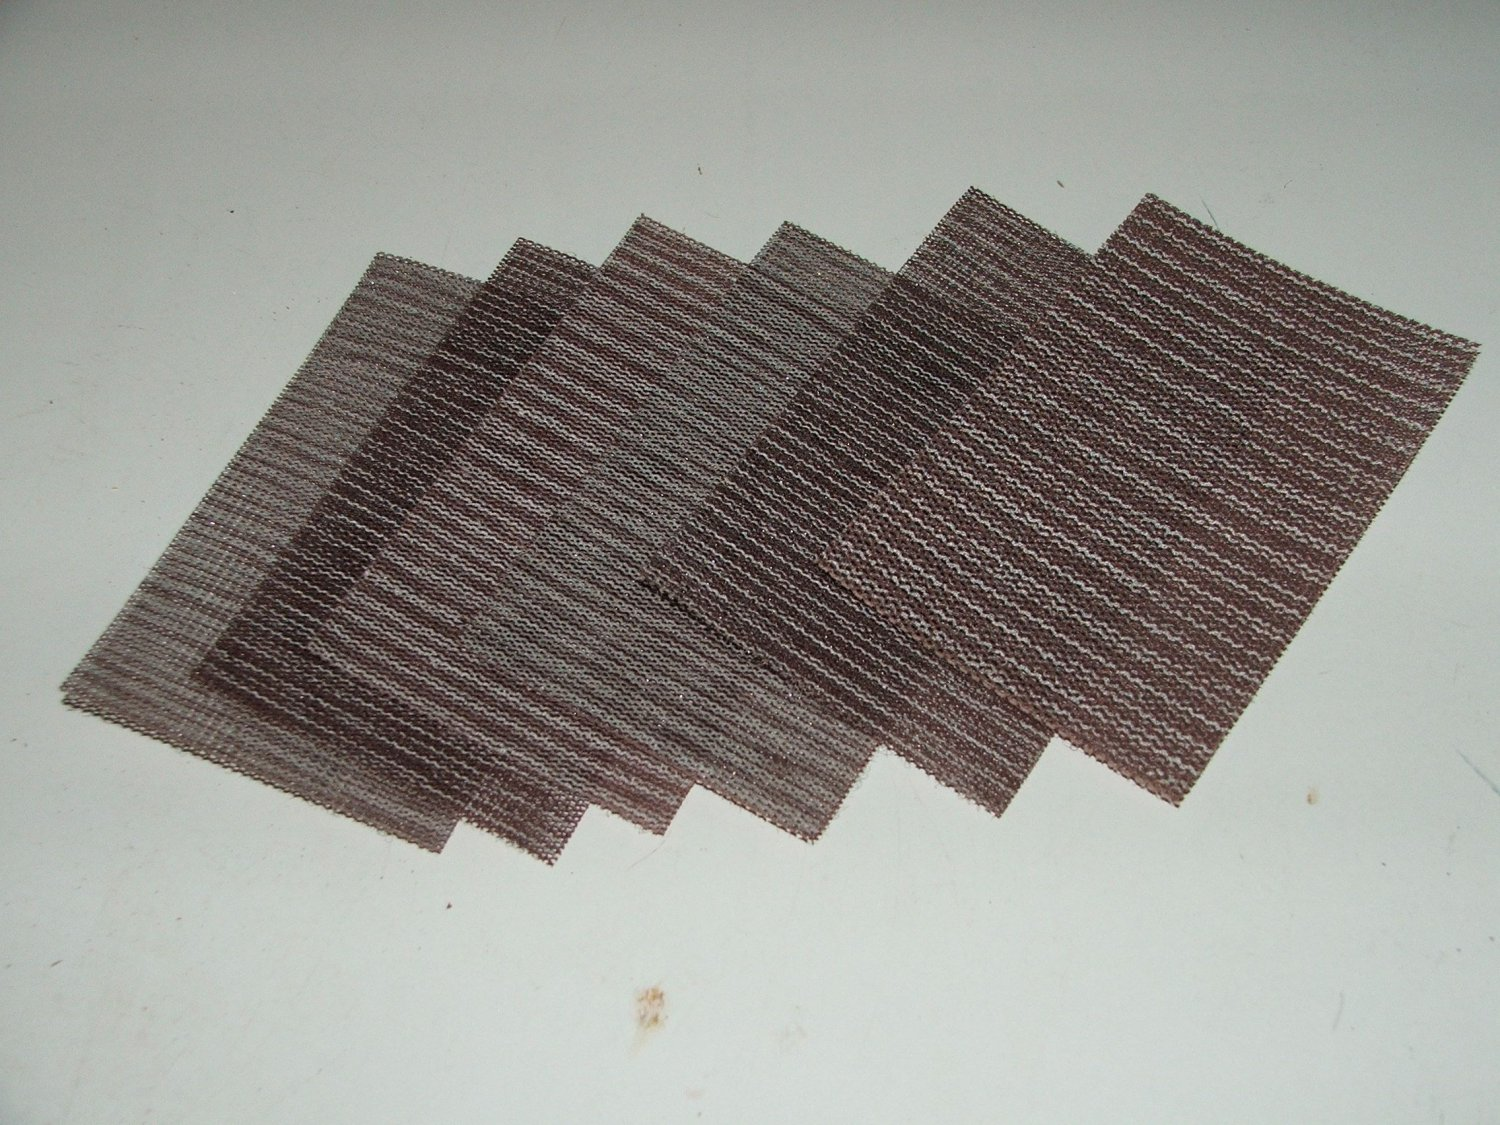 ABRANET - 6 Strips each 12 inches long  for Woodturners